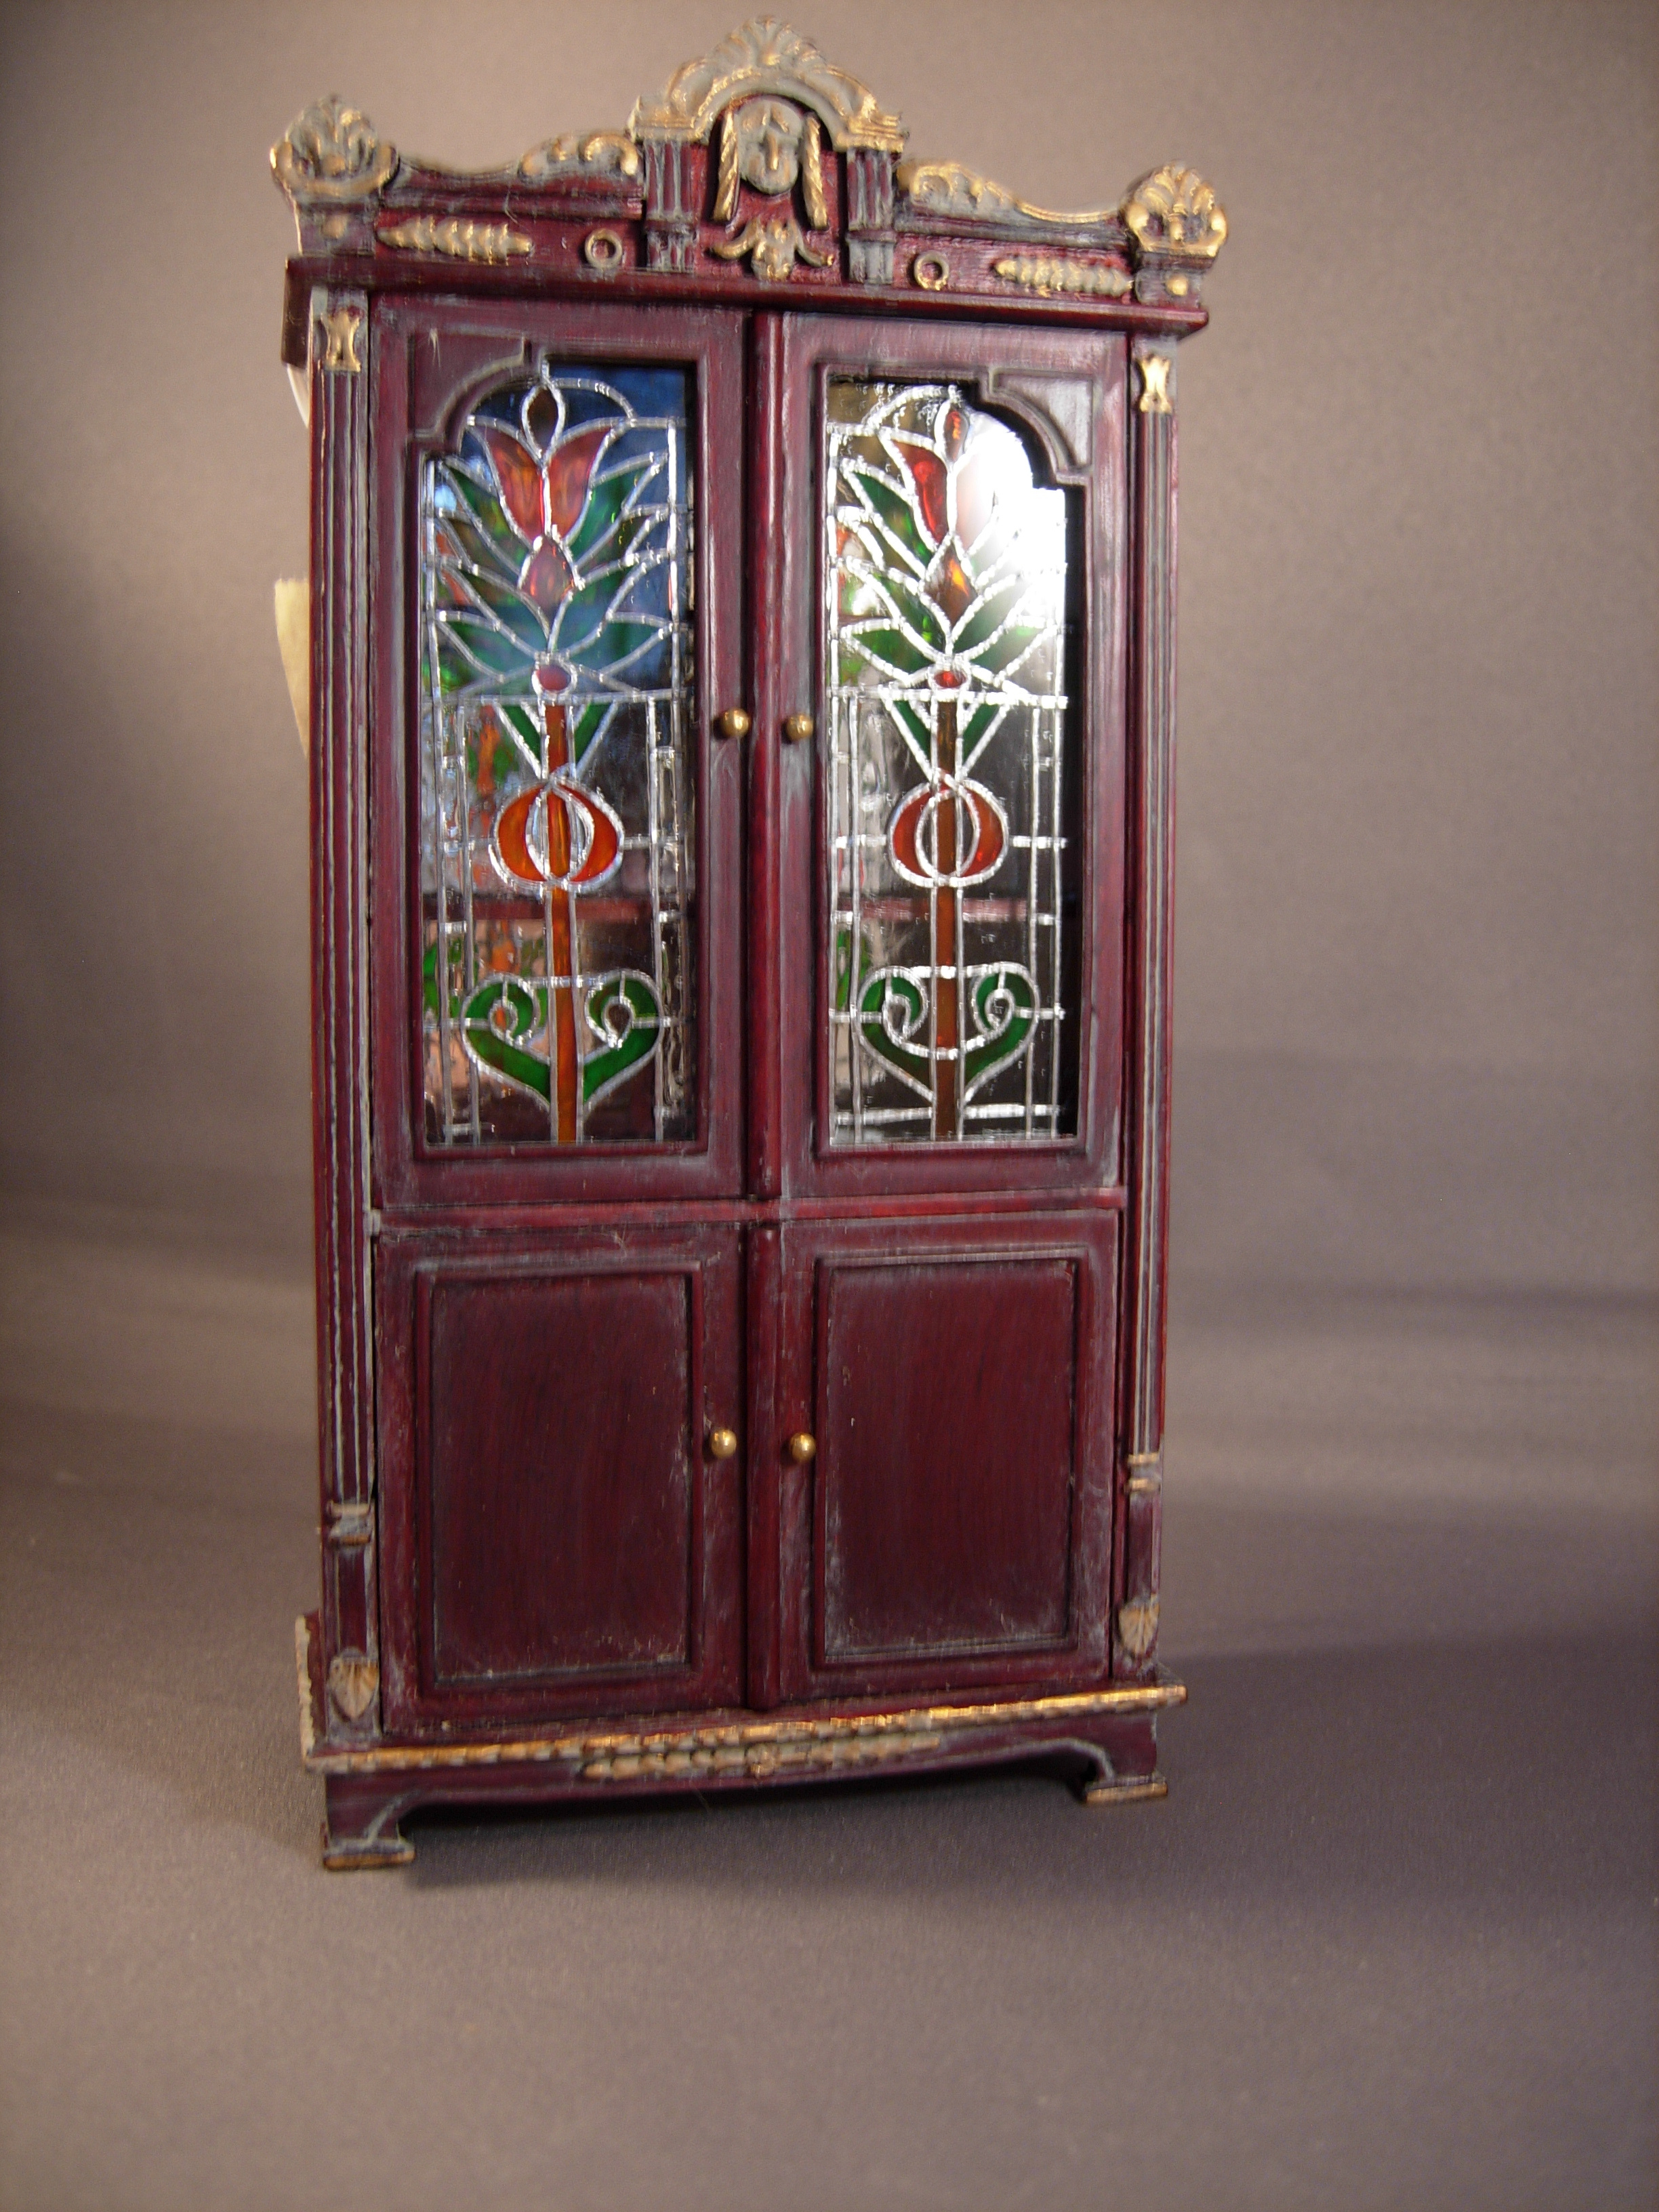 Lit Stained Glass Cabinet - $220